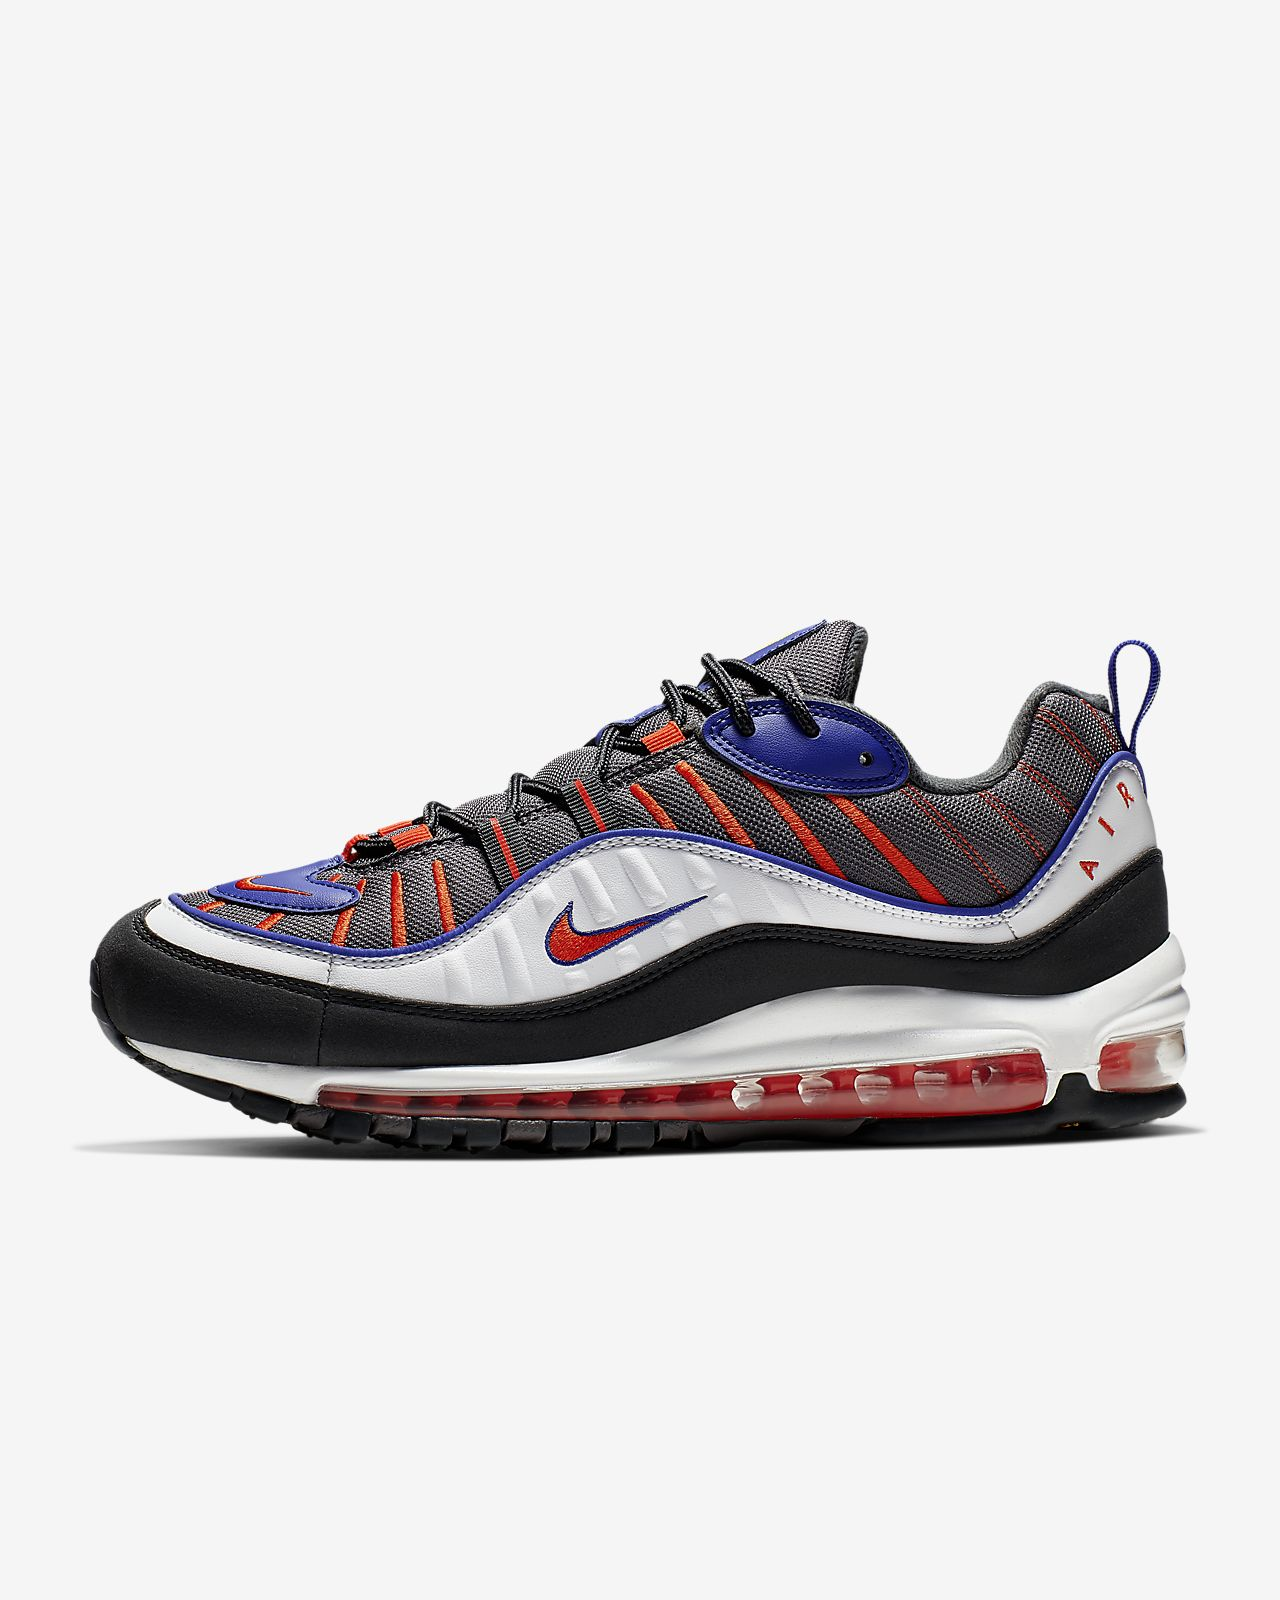 Where To Buy: Nike Air Max 98